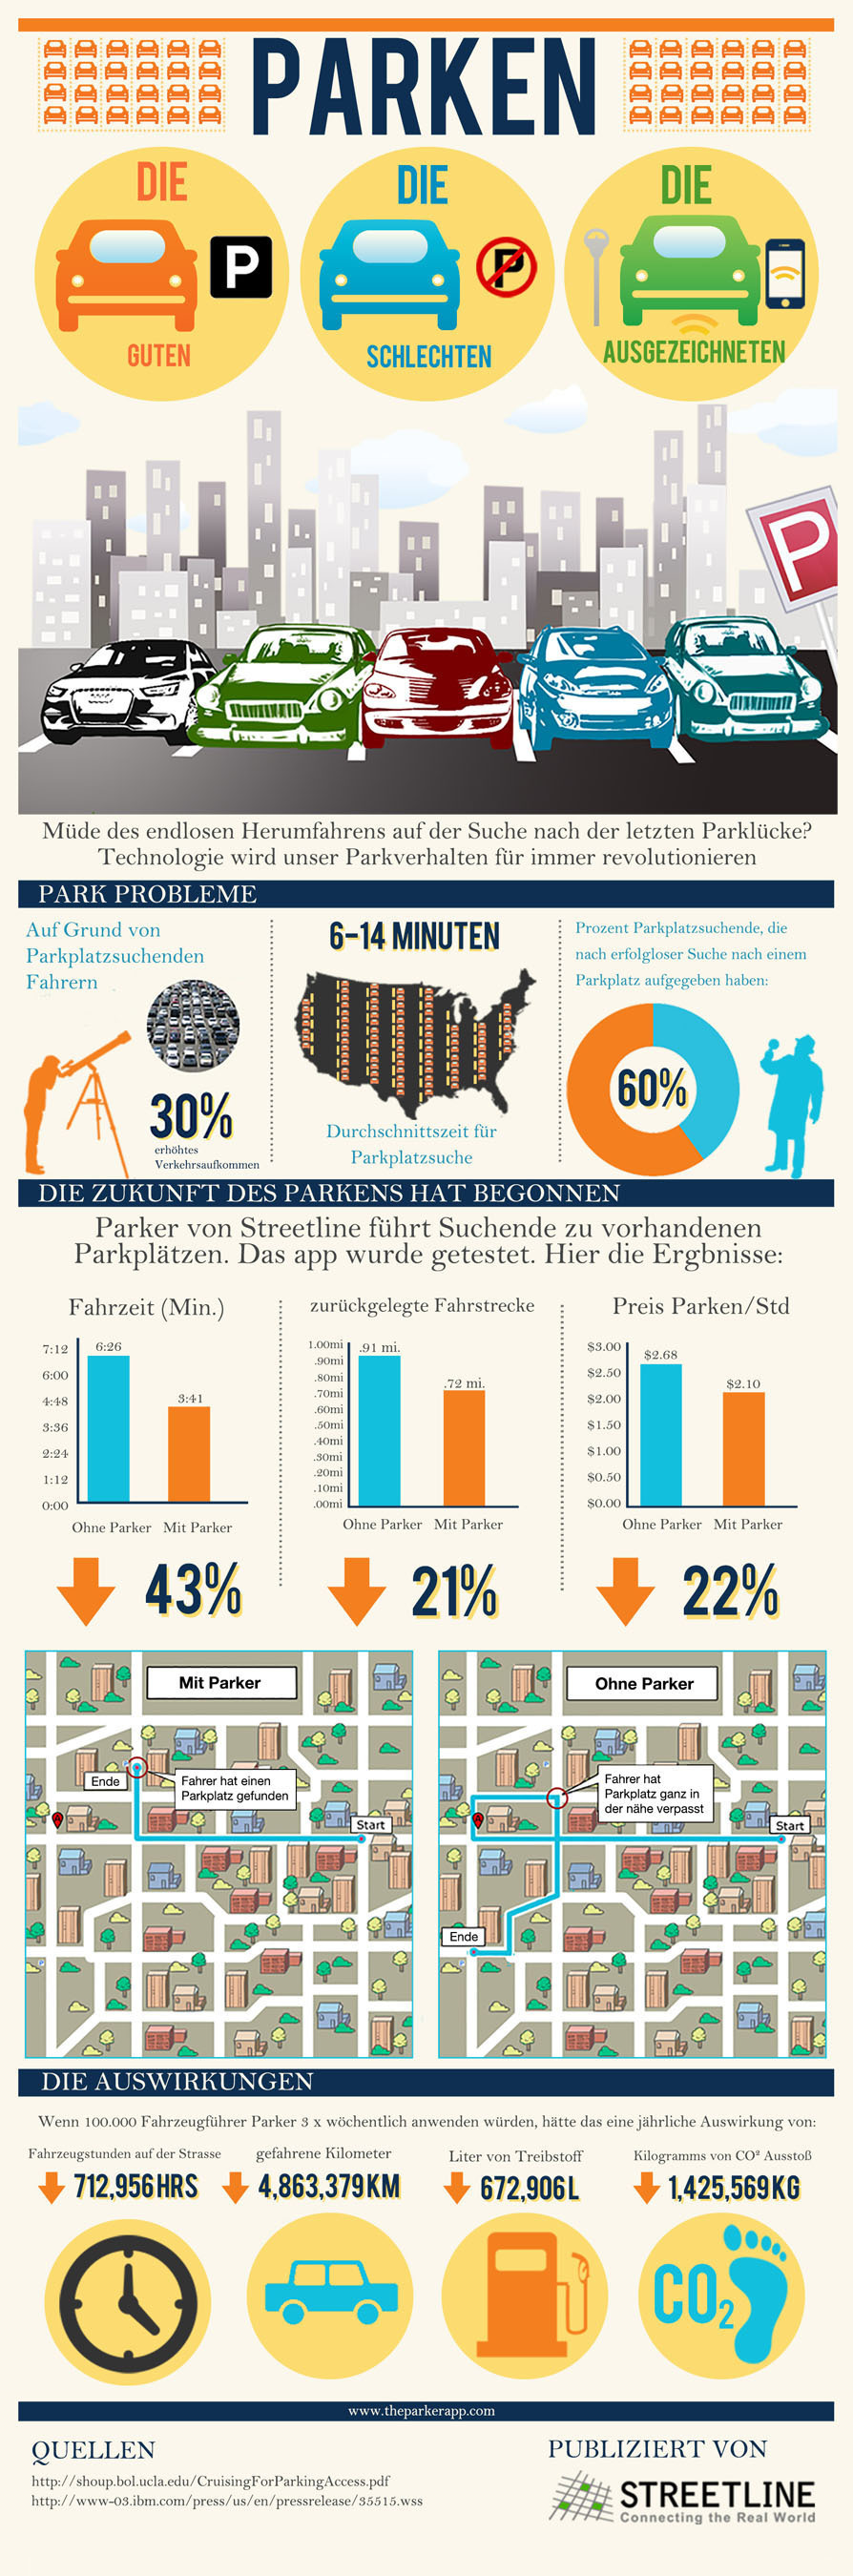 Parker, the on-street parking guidance app, reduces environmental, traffic, and economic impact of parking. ...